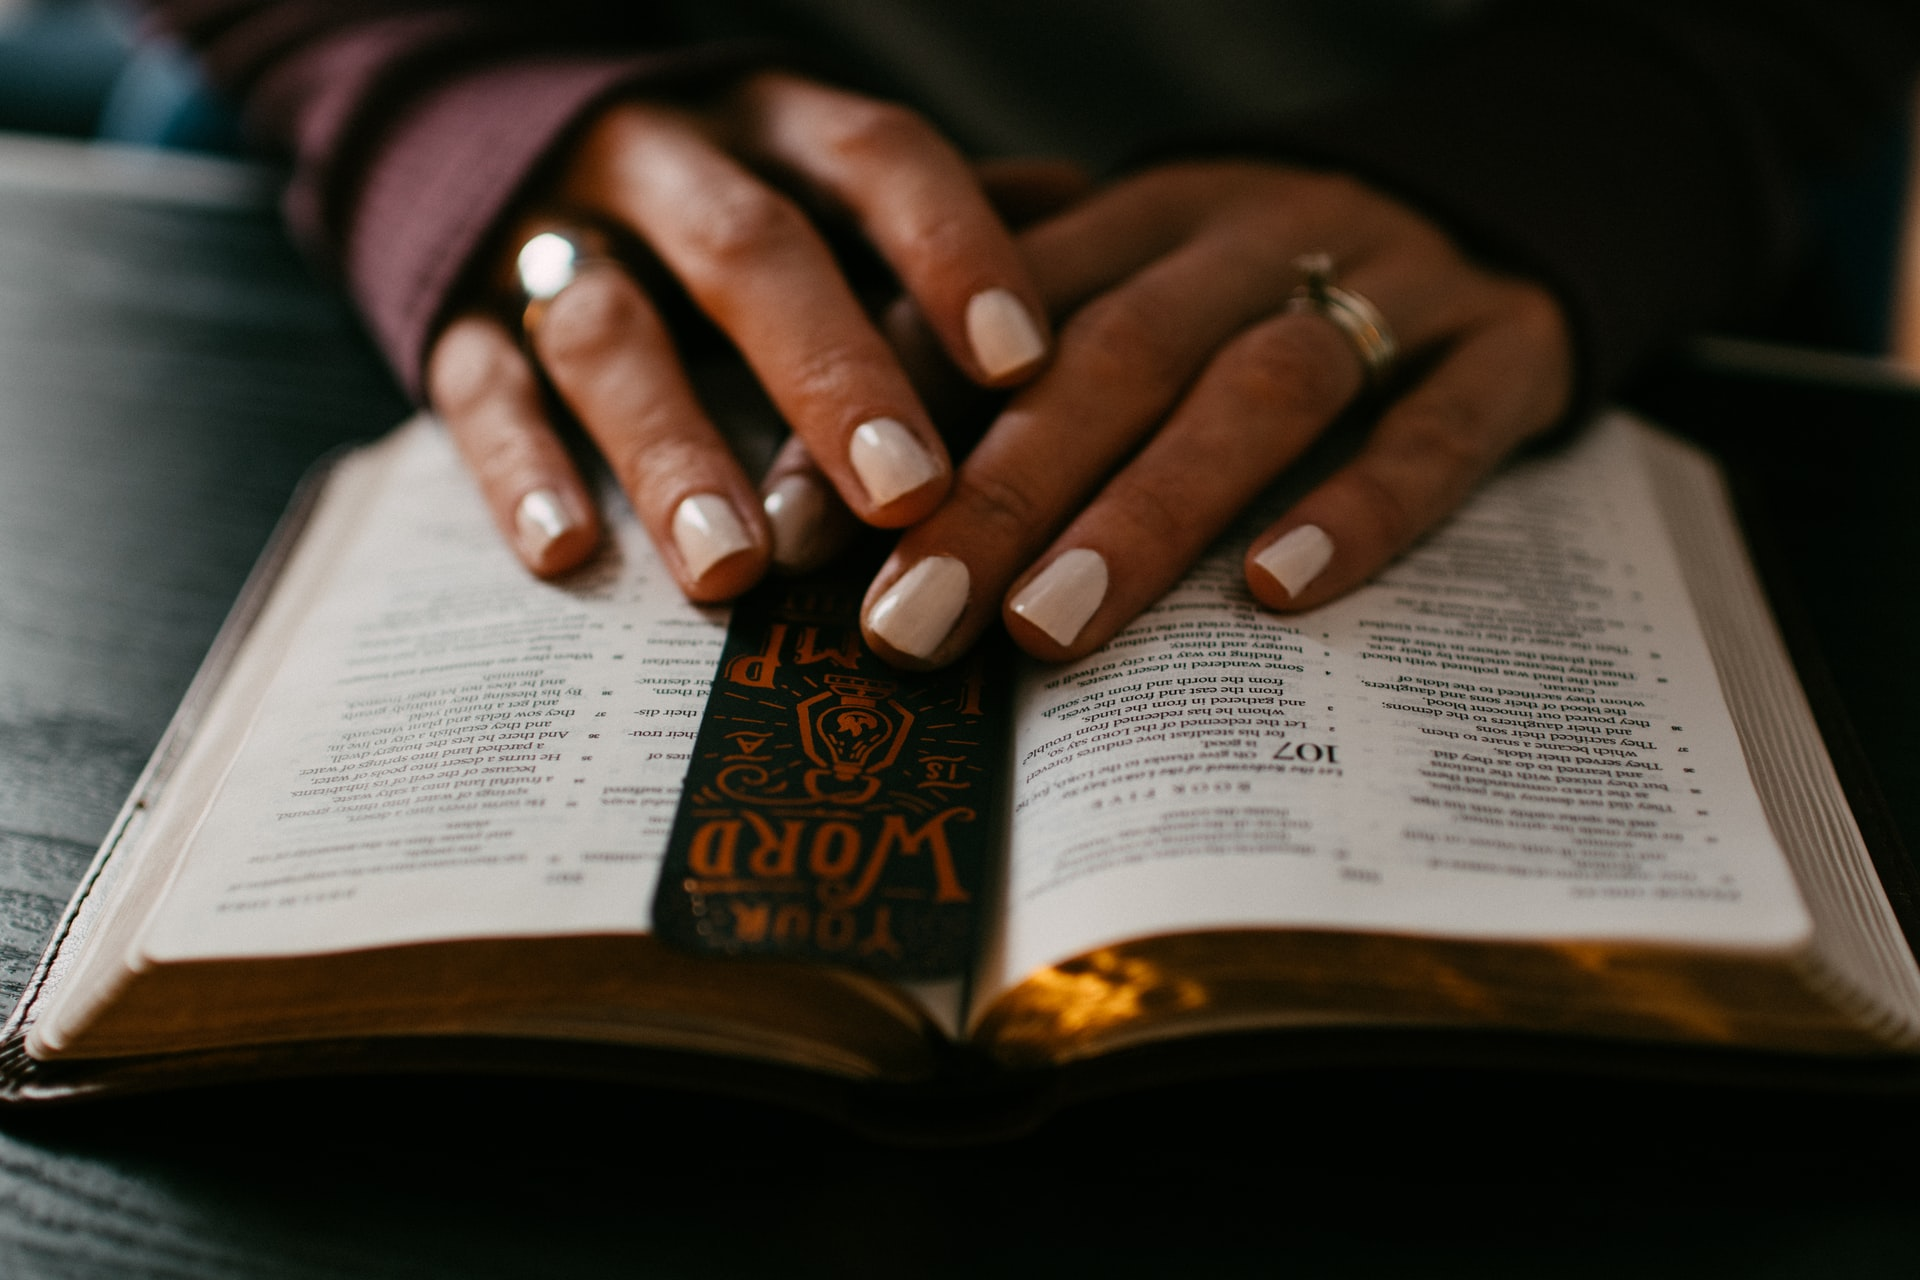 Going to My Inner Chapel: Deepening My Relationship with God